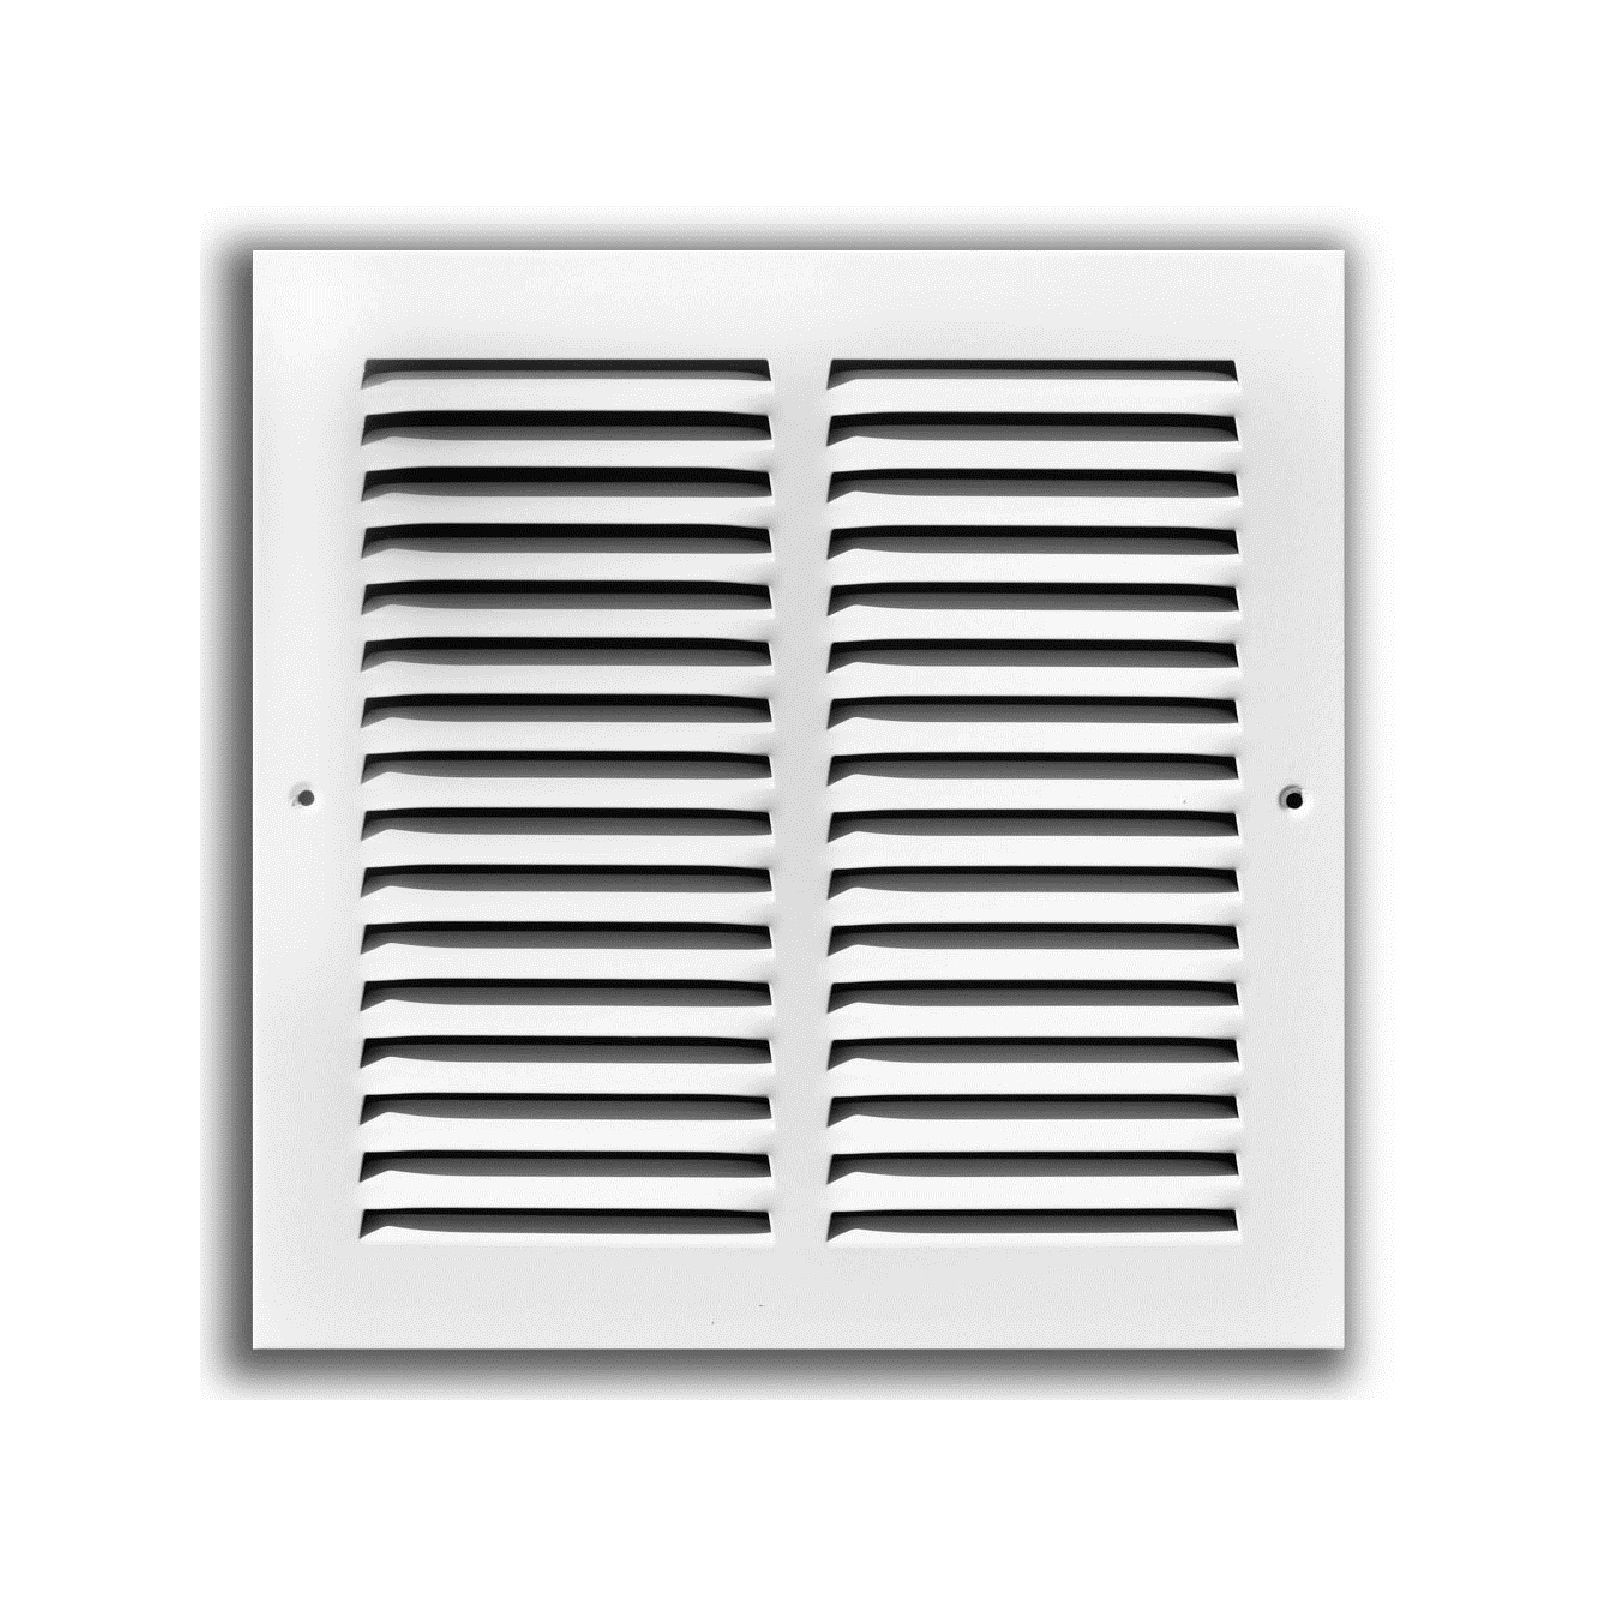 "TRUaire 170 24X14 - Steel Return Air Grille - 1/2"" Spaced Fin, White, 24"" X 14"""